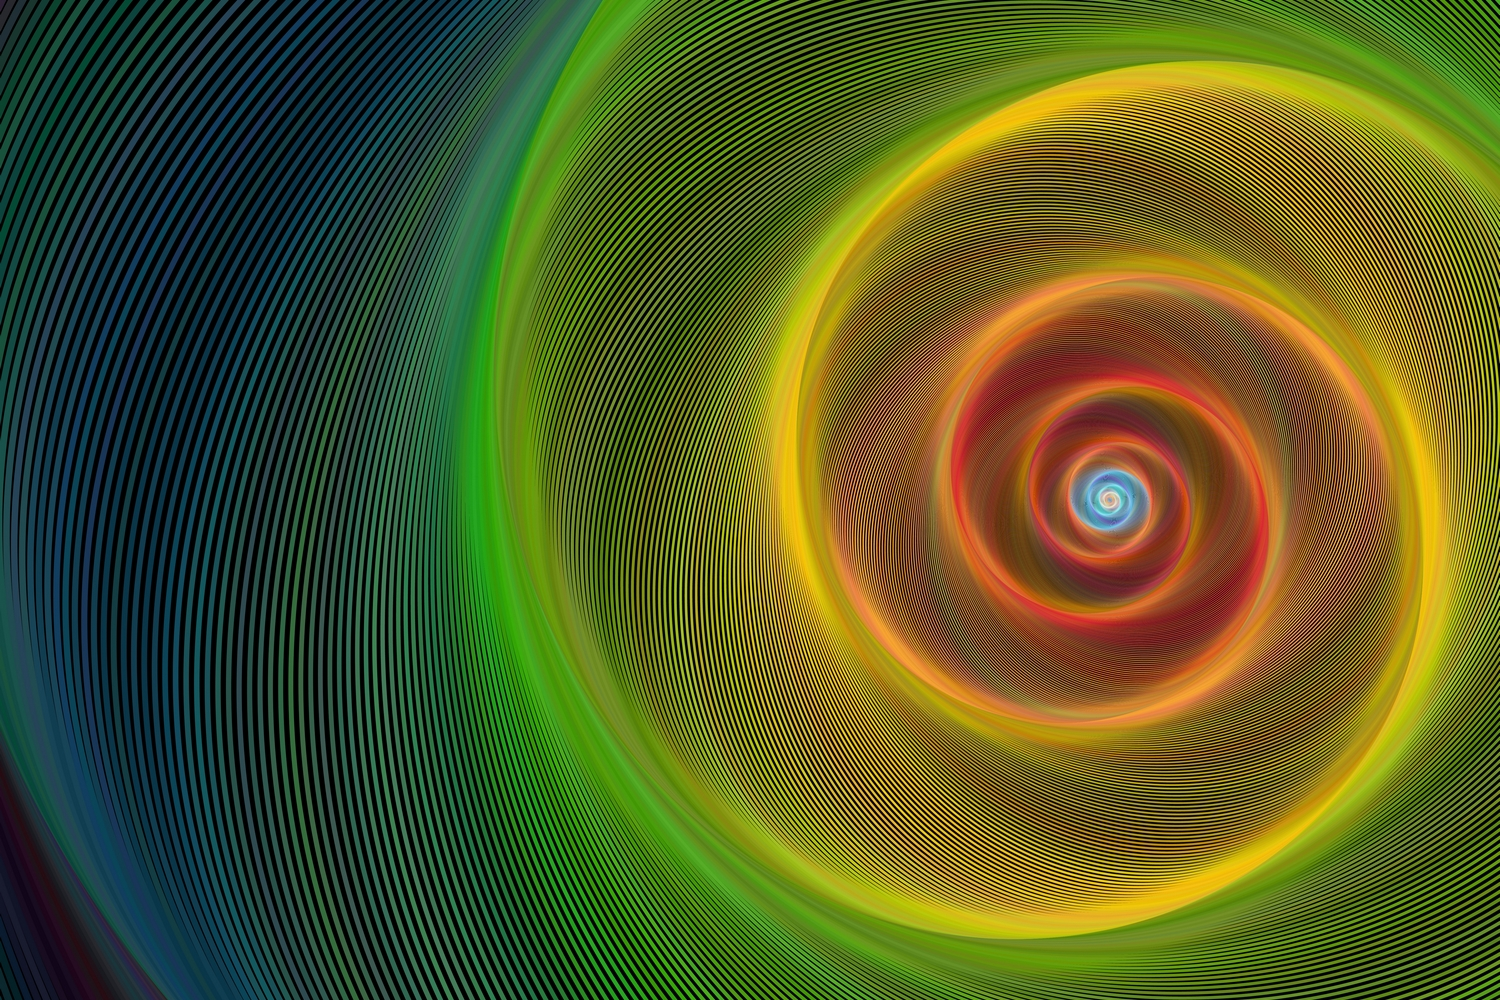 5 Fractal Spiral Backgrounds (AI, EPS, JPG 5000x5000) example image 2